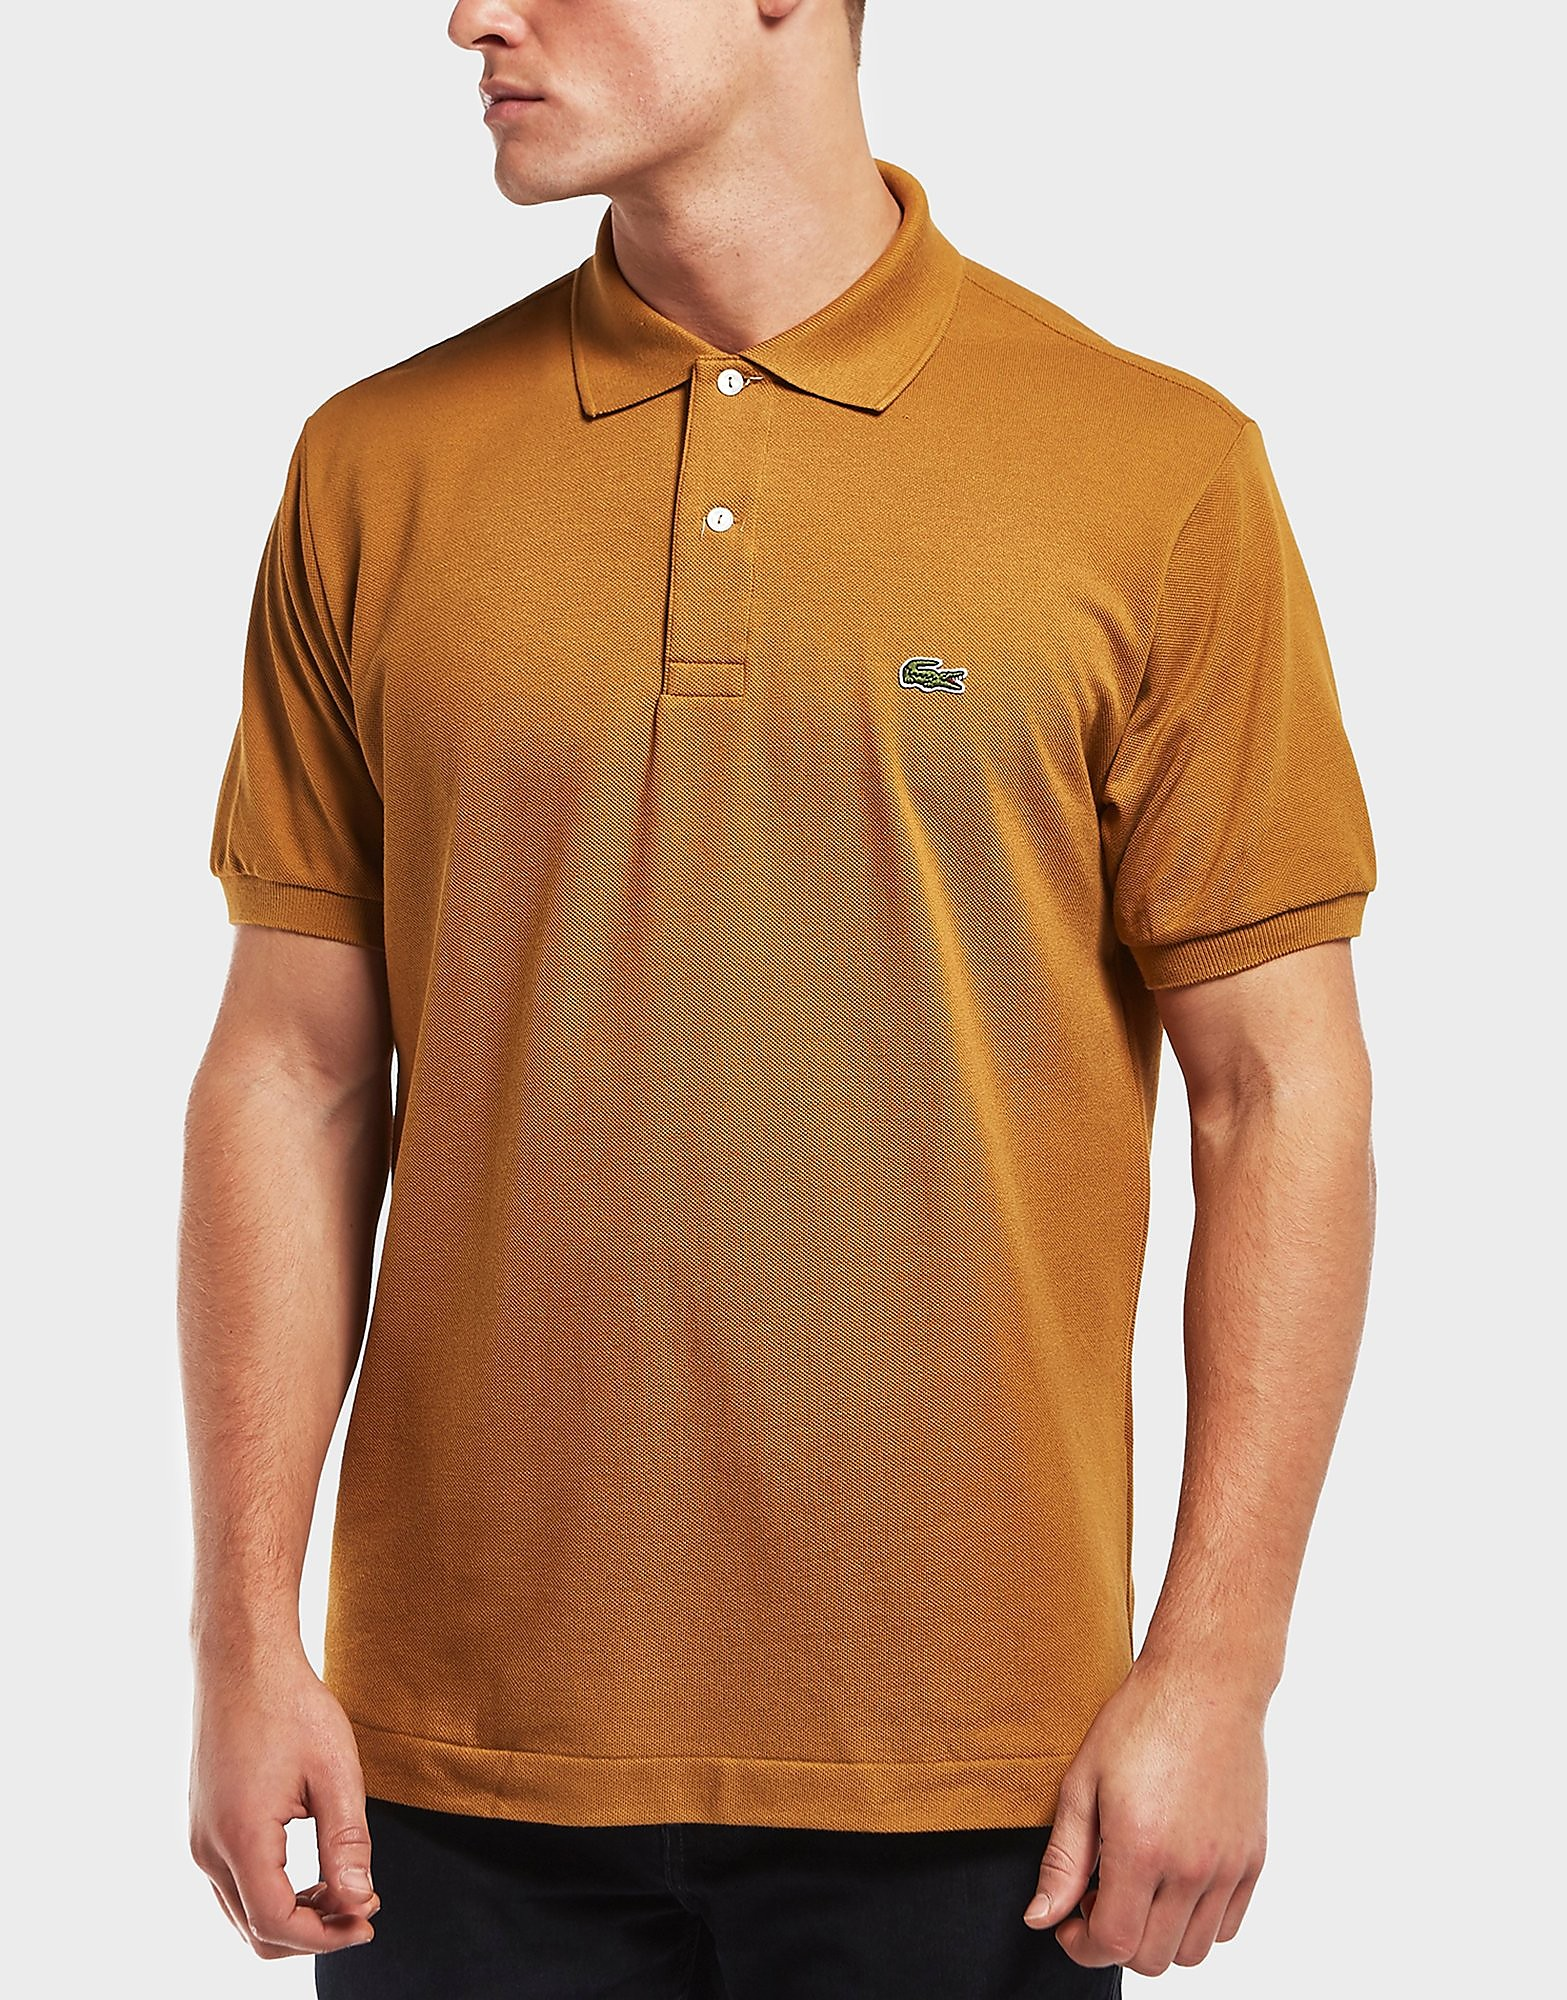 Lacoste 1212 Renais Short Sleeve Polo Shirt